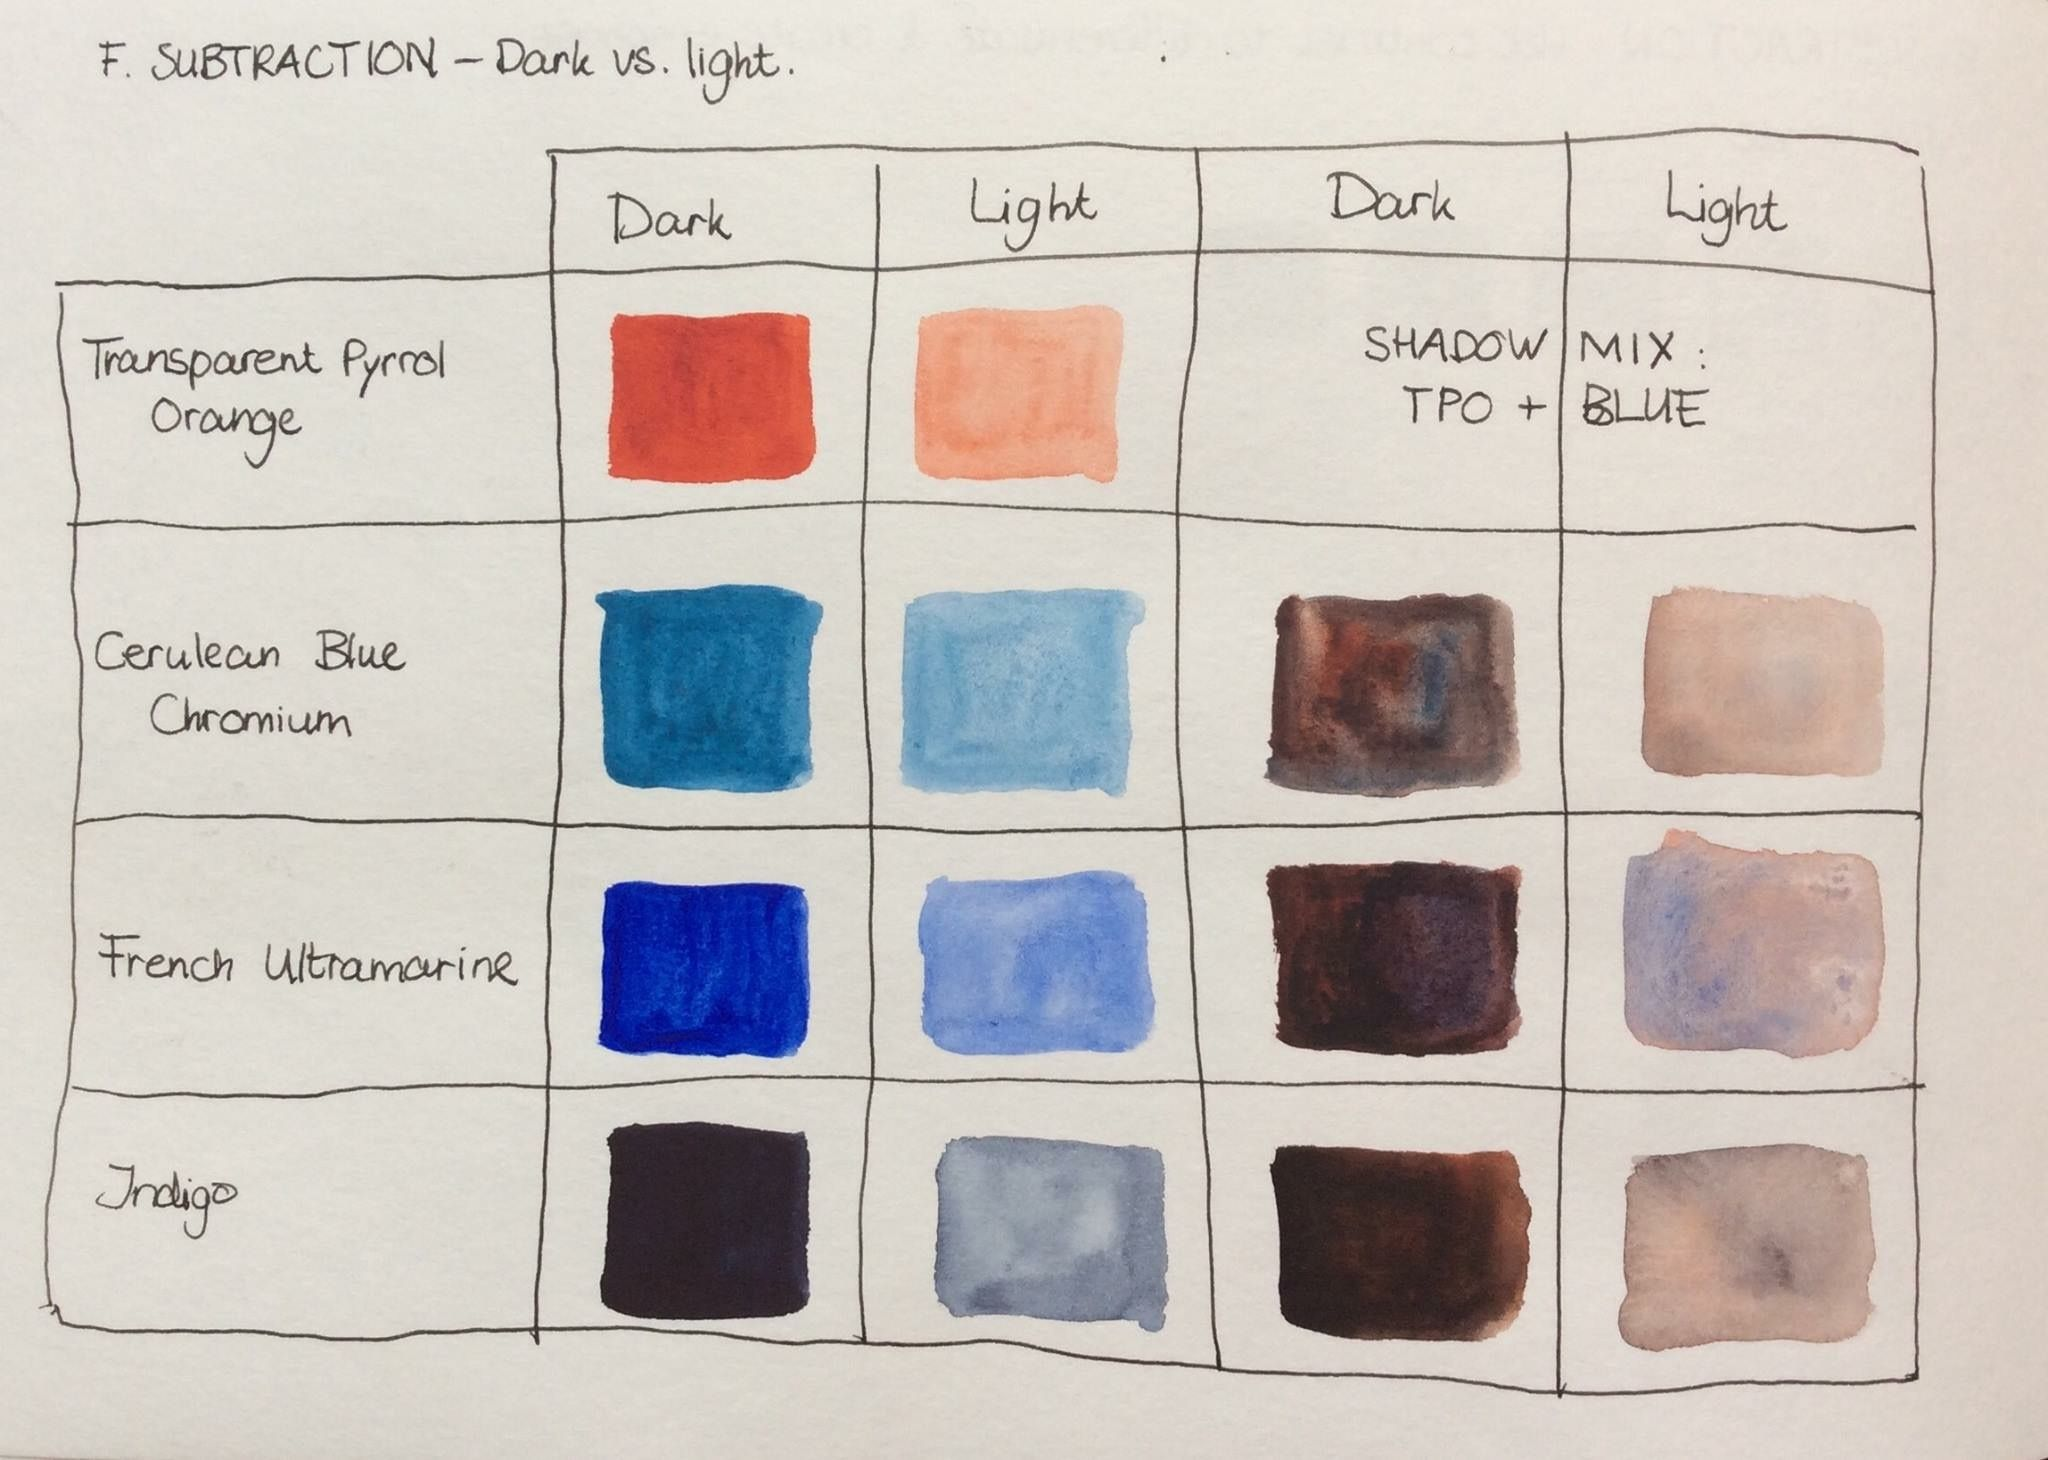 Pin by eyesofapril on how towatercolour mix pinterest color color mixing chart watercolor techniques watercolour paint colors pen and wash watercolor painting watercolors watercolor nvjuhfo Choice Image